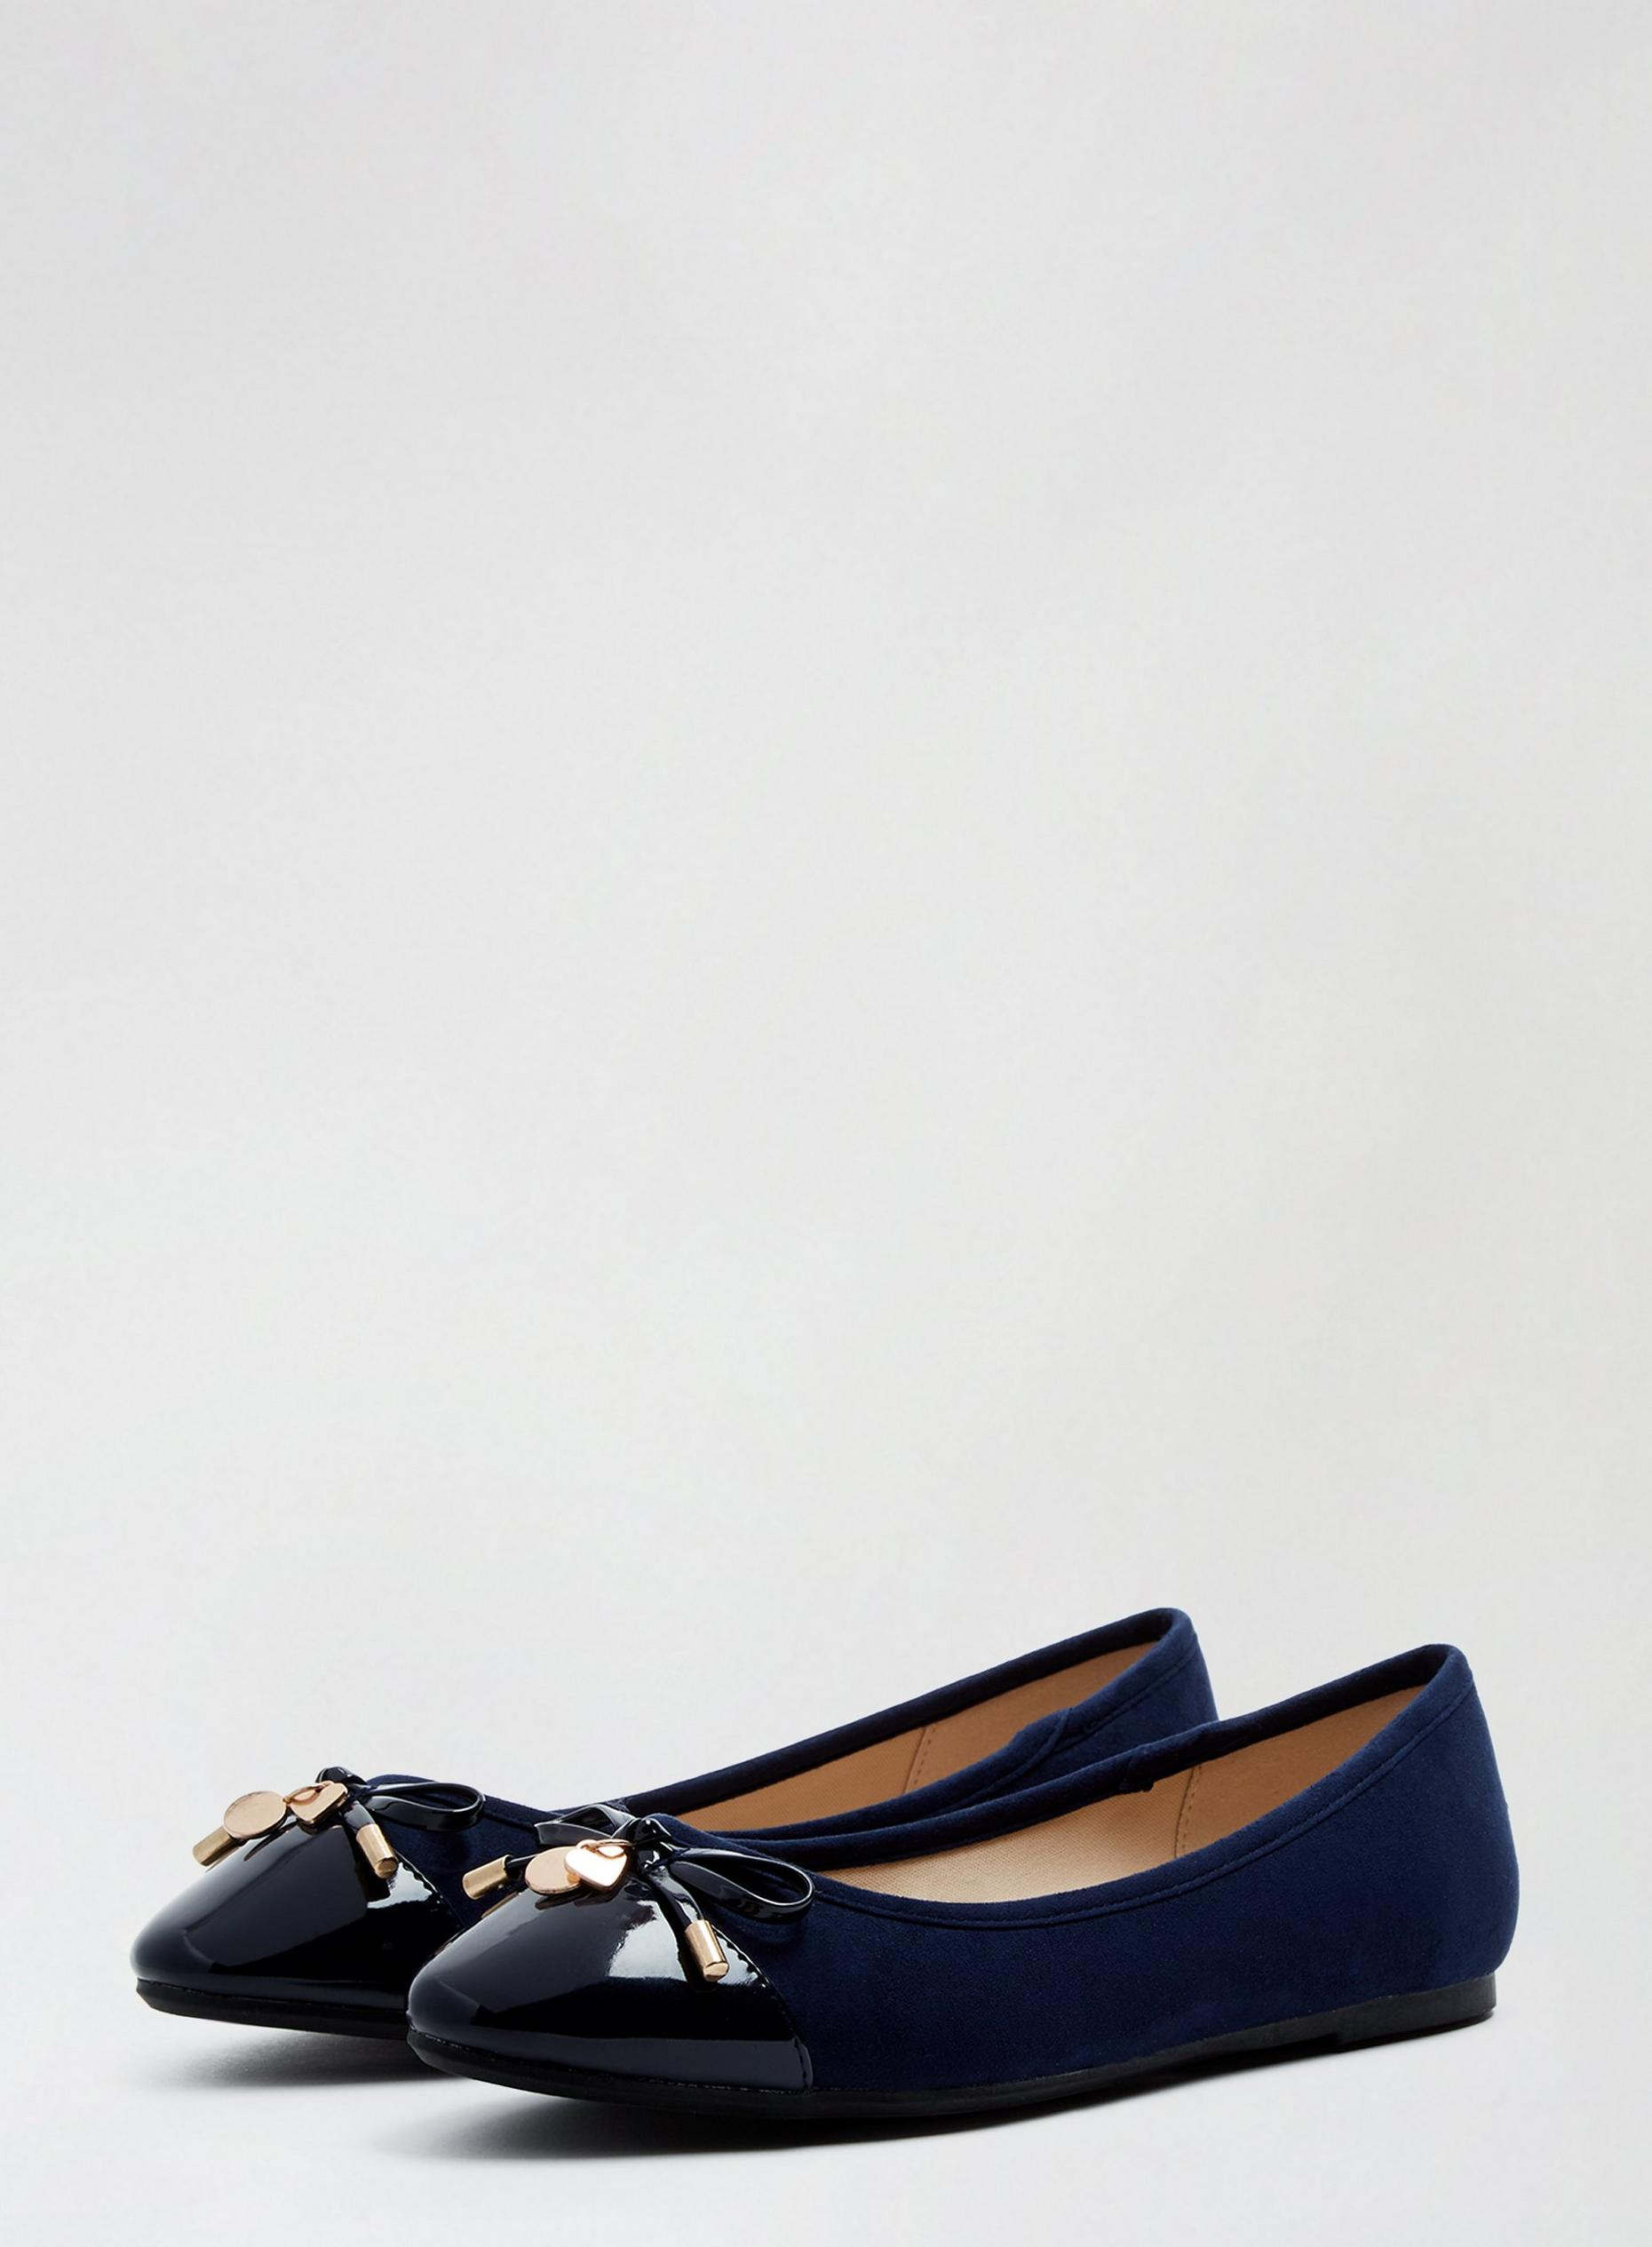 Wide Fit Navy Pacific Ballerina Pumps